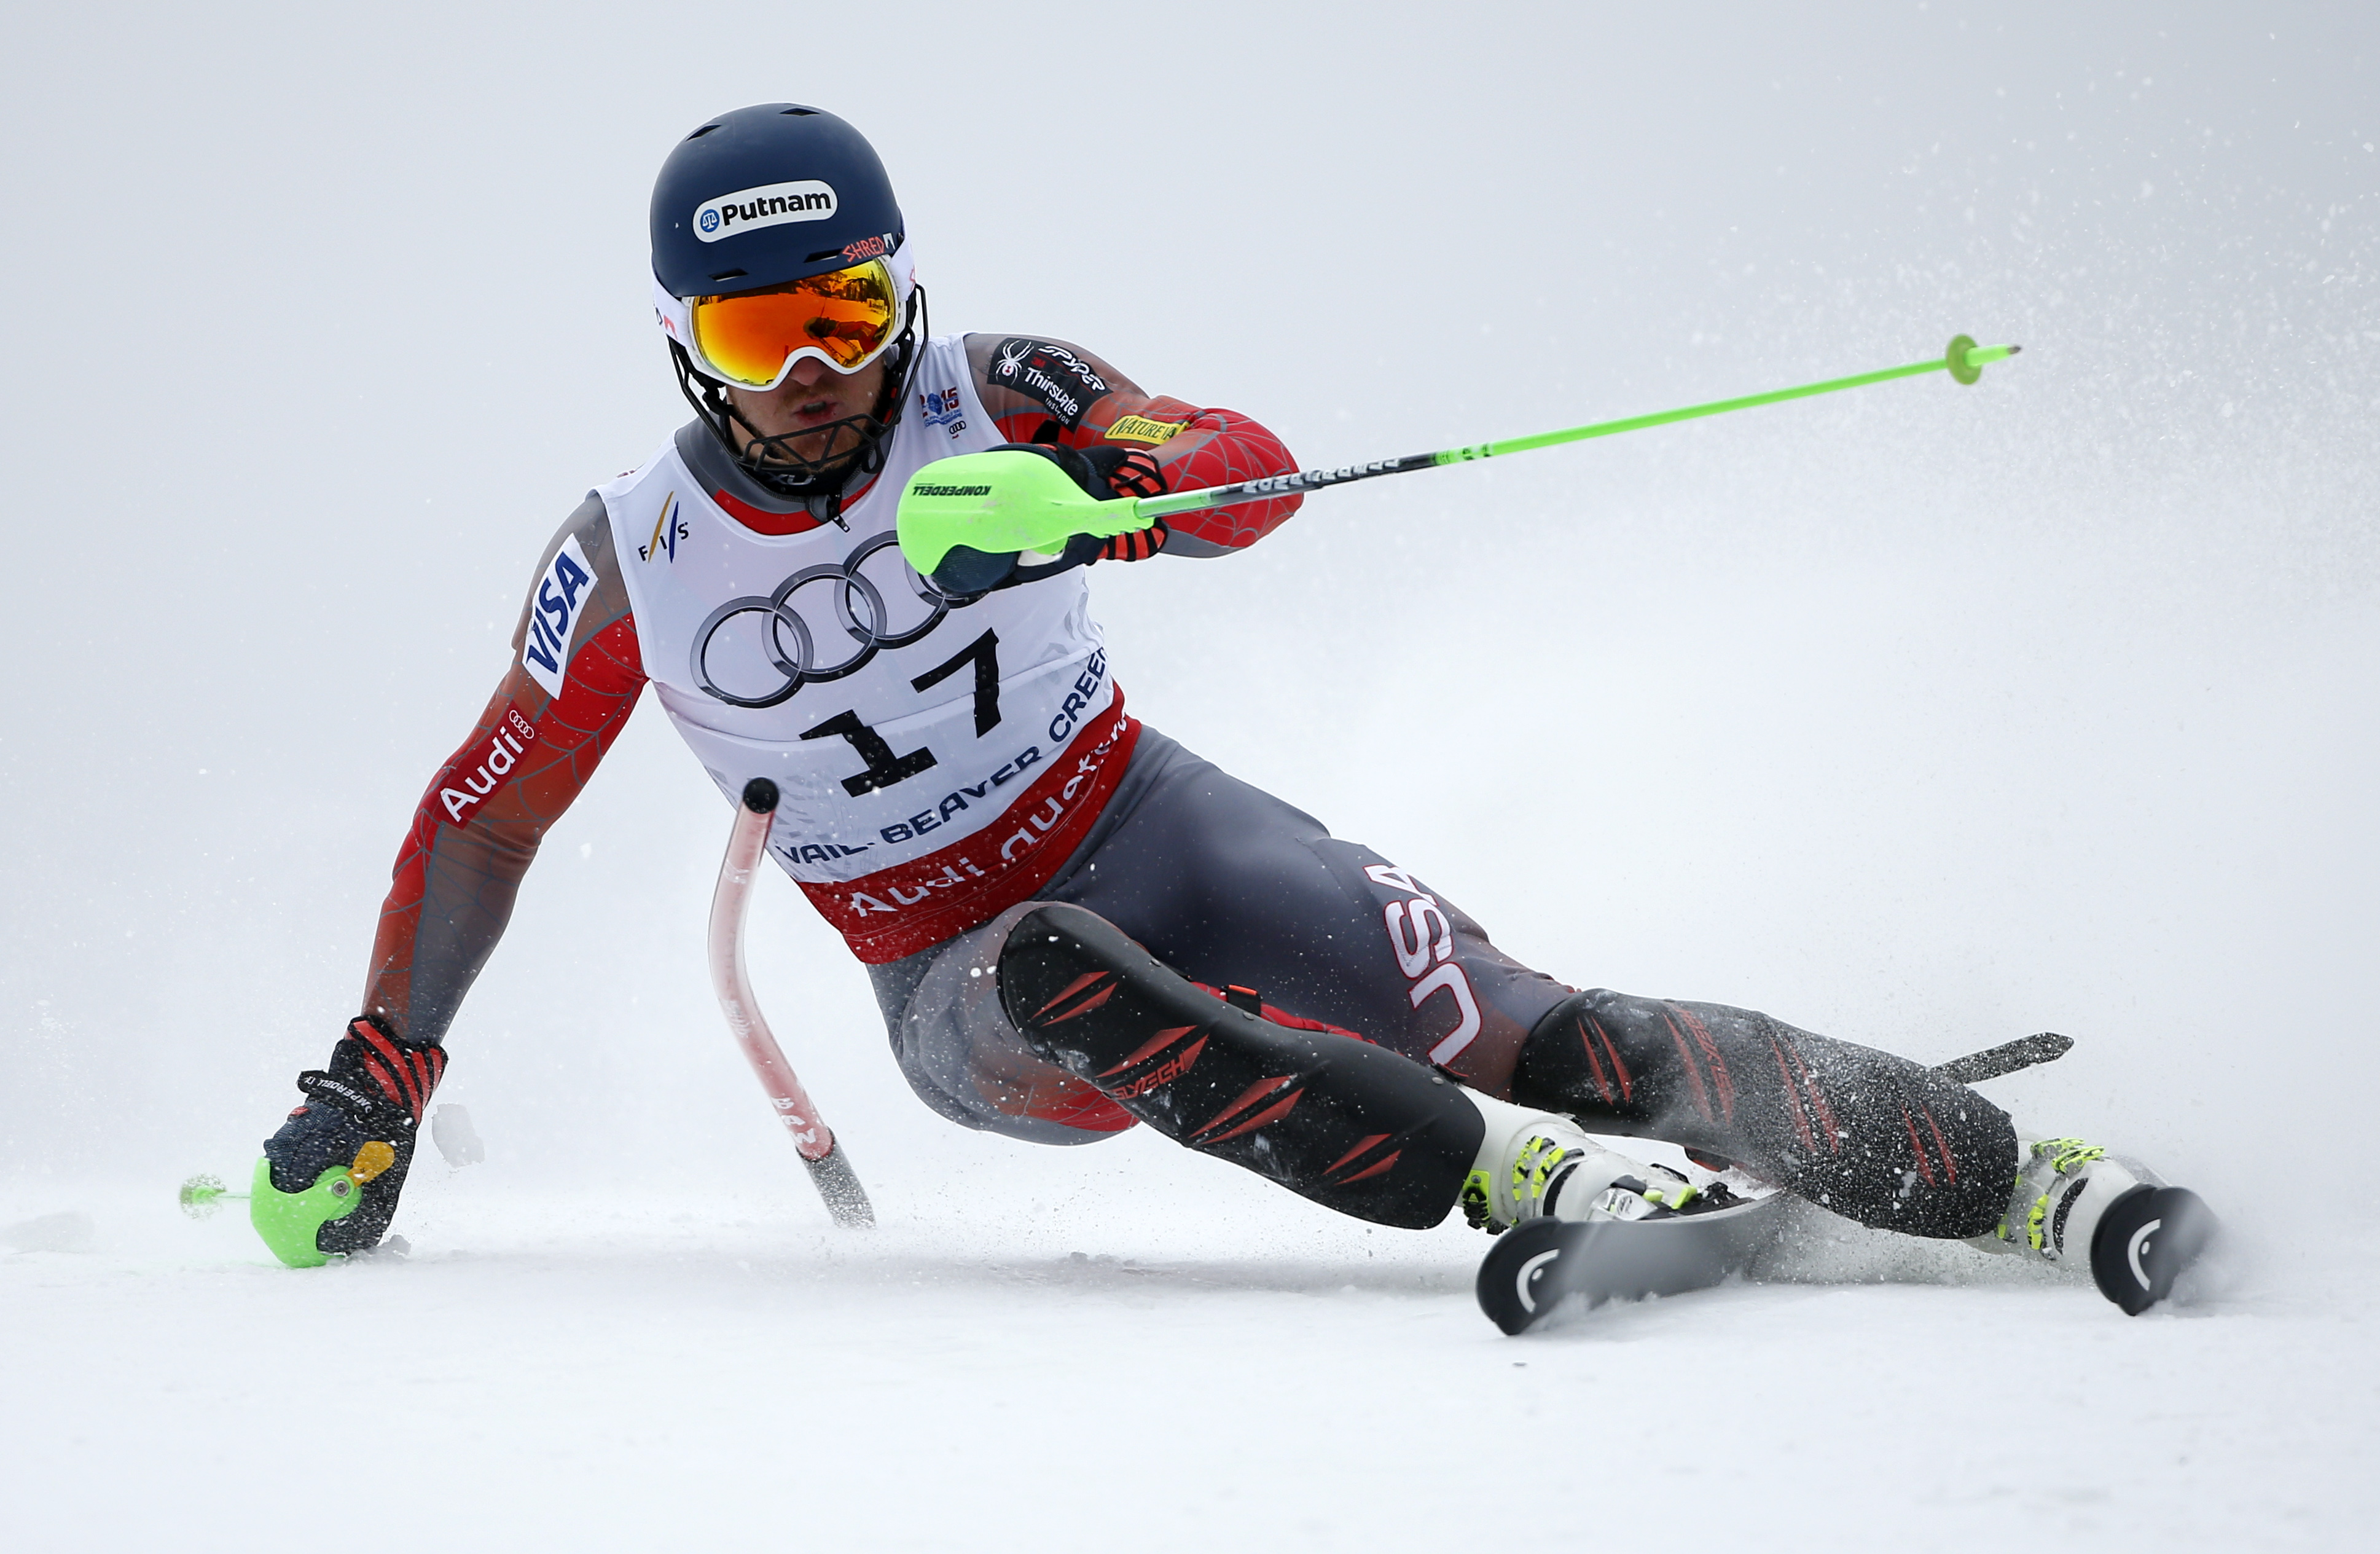 Photo: Ted Ligity racing in the FIS world championship slalom